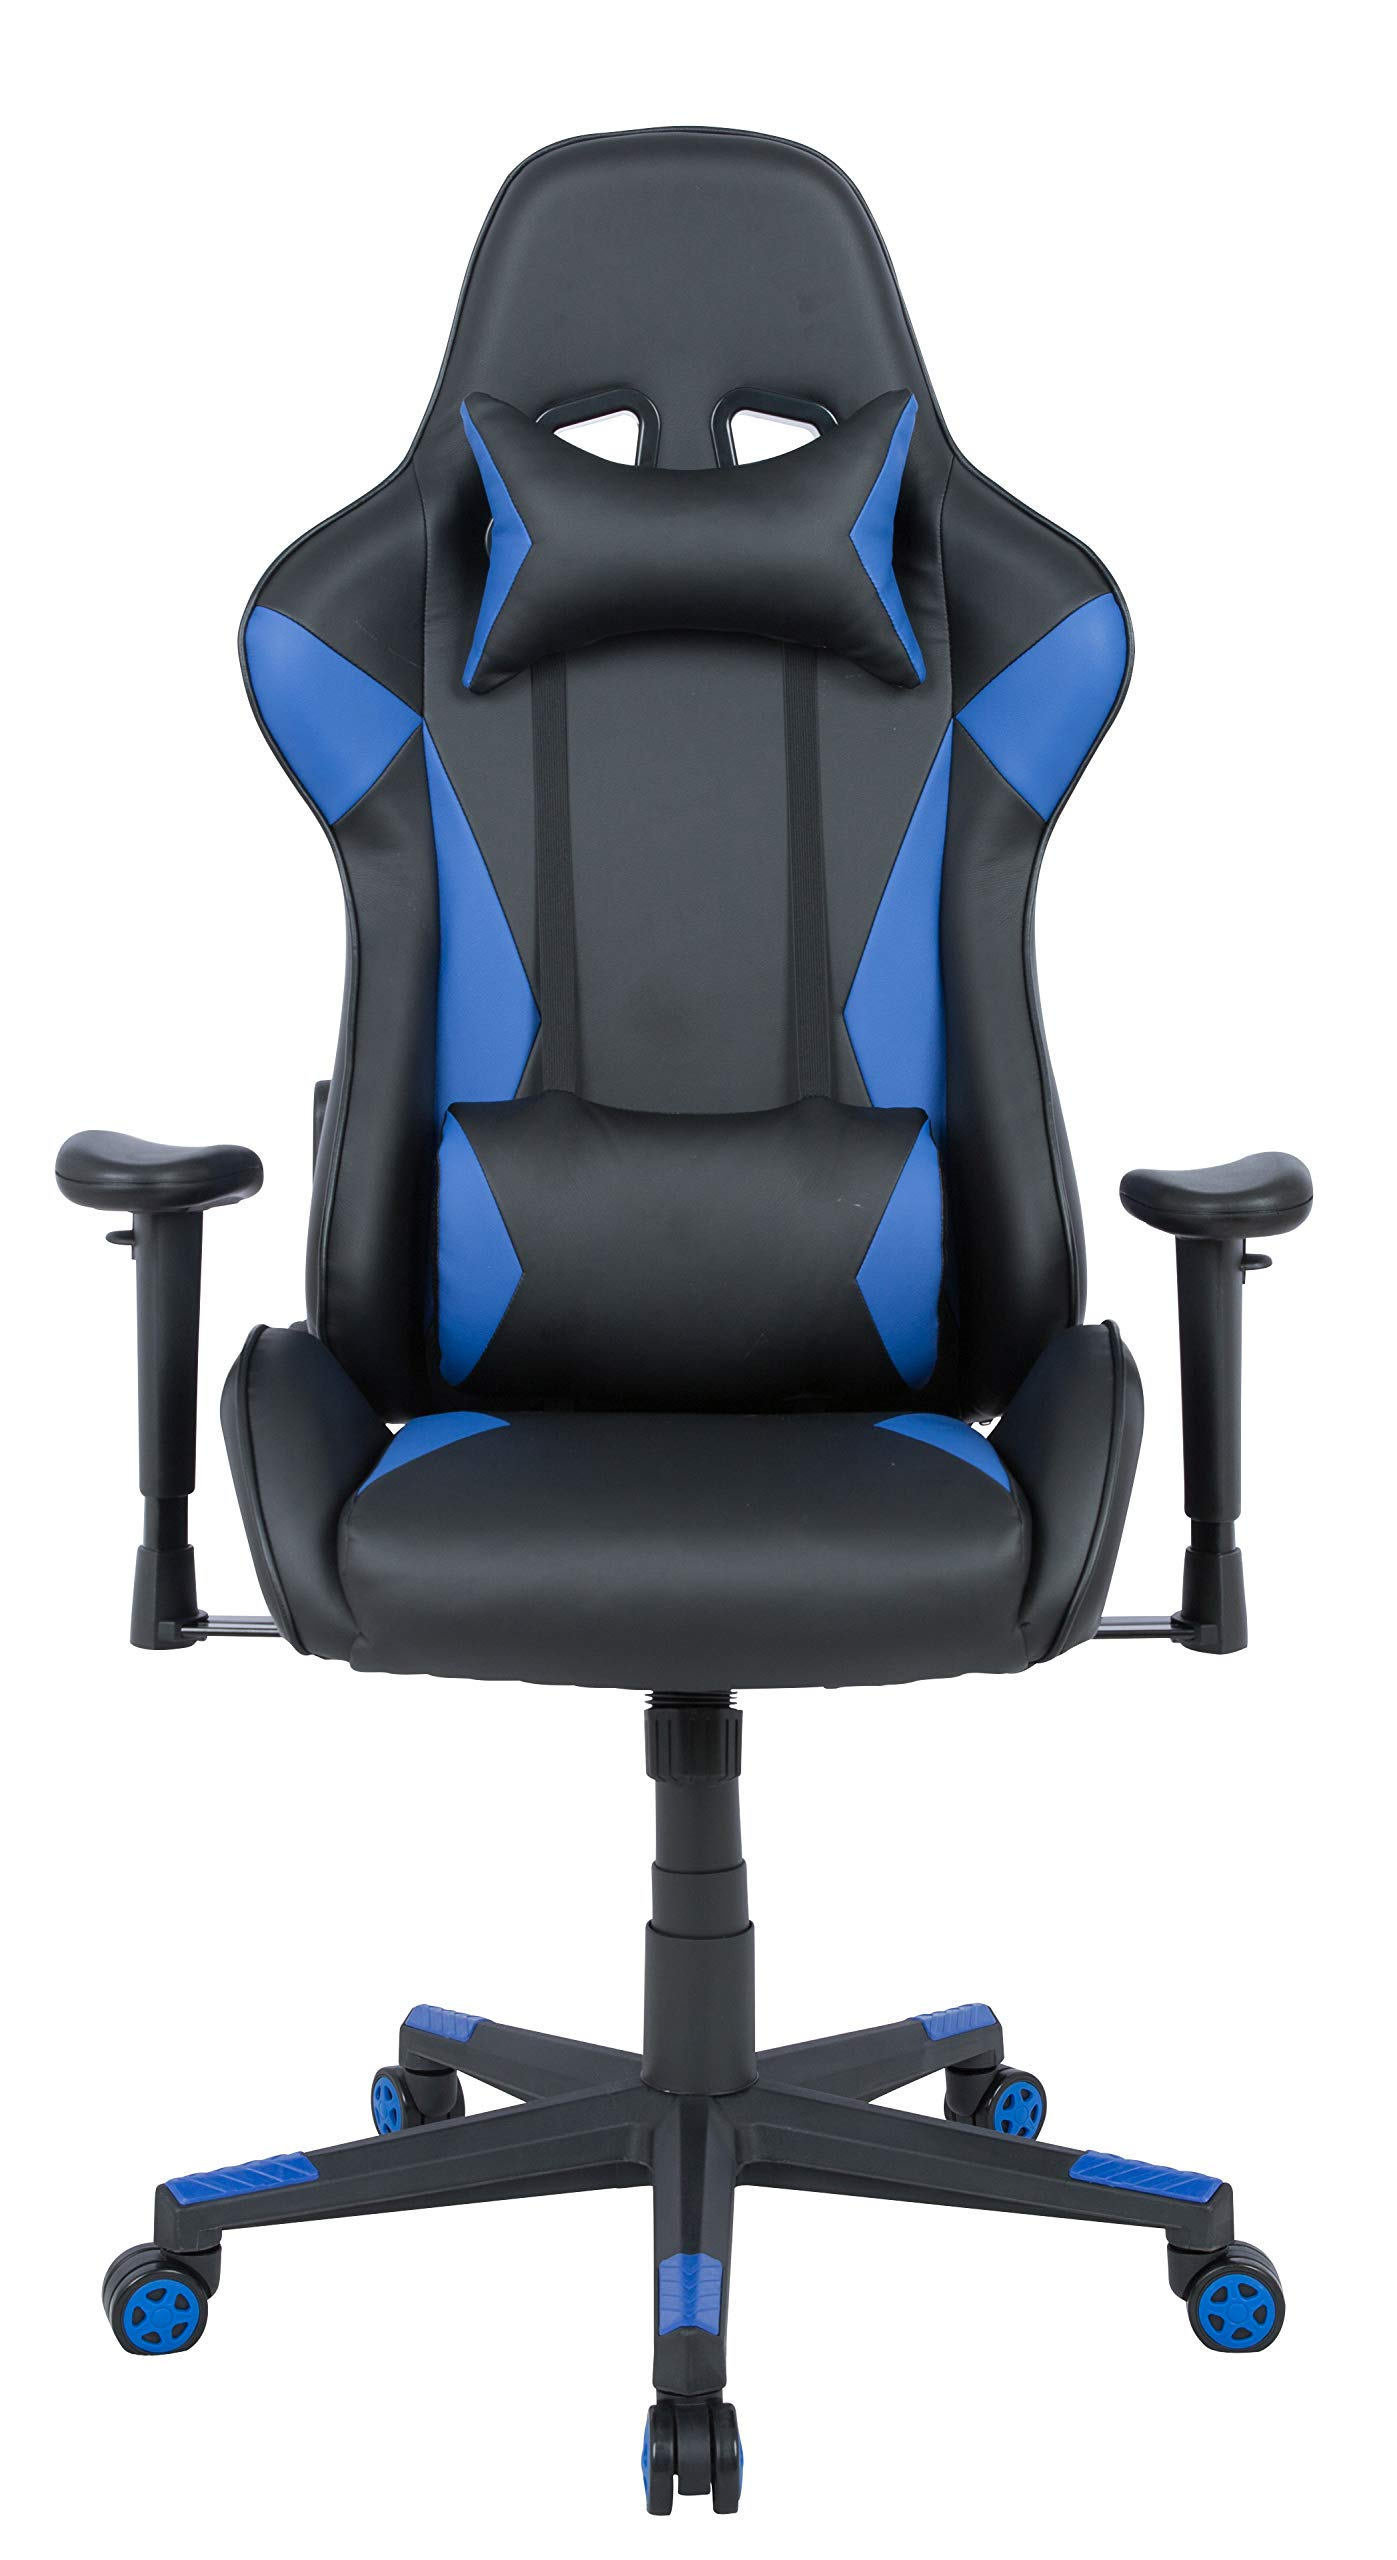 AmazonBasics Gaming Office Chair - Racing Style Seat with Headrest and Firm Lumbar Support - Blue